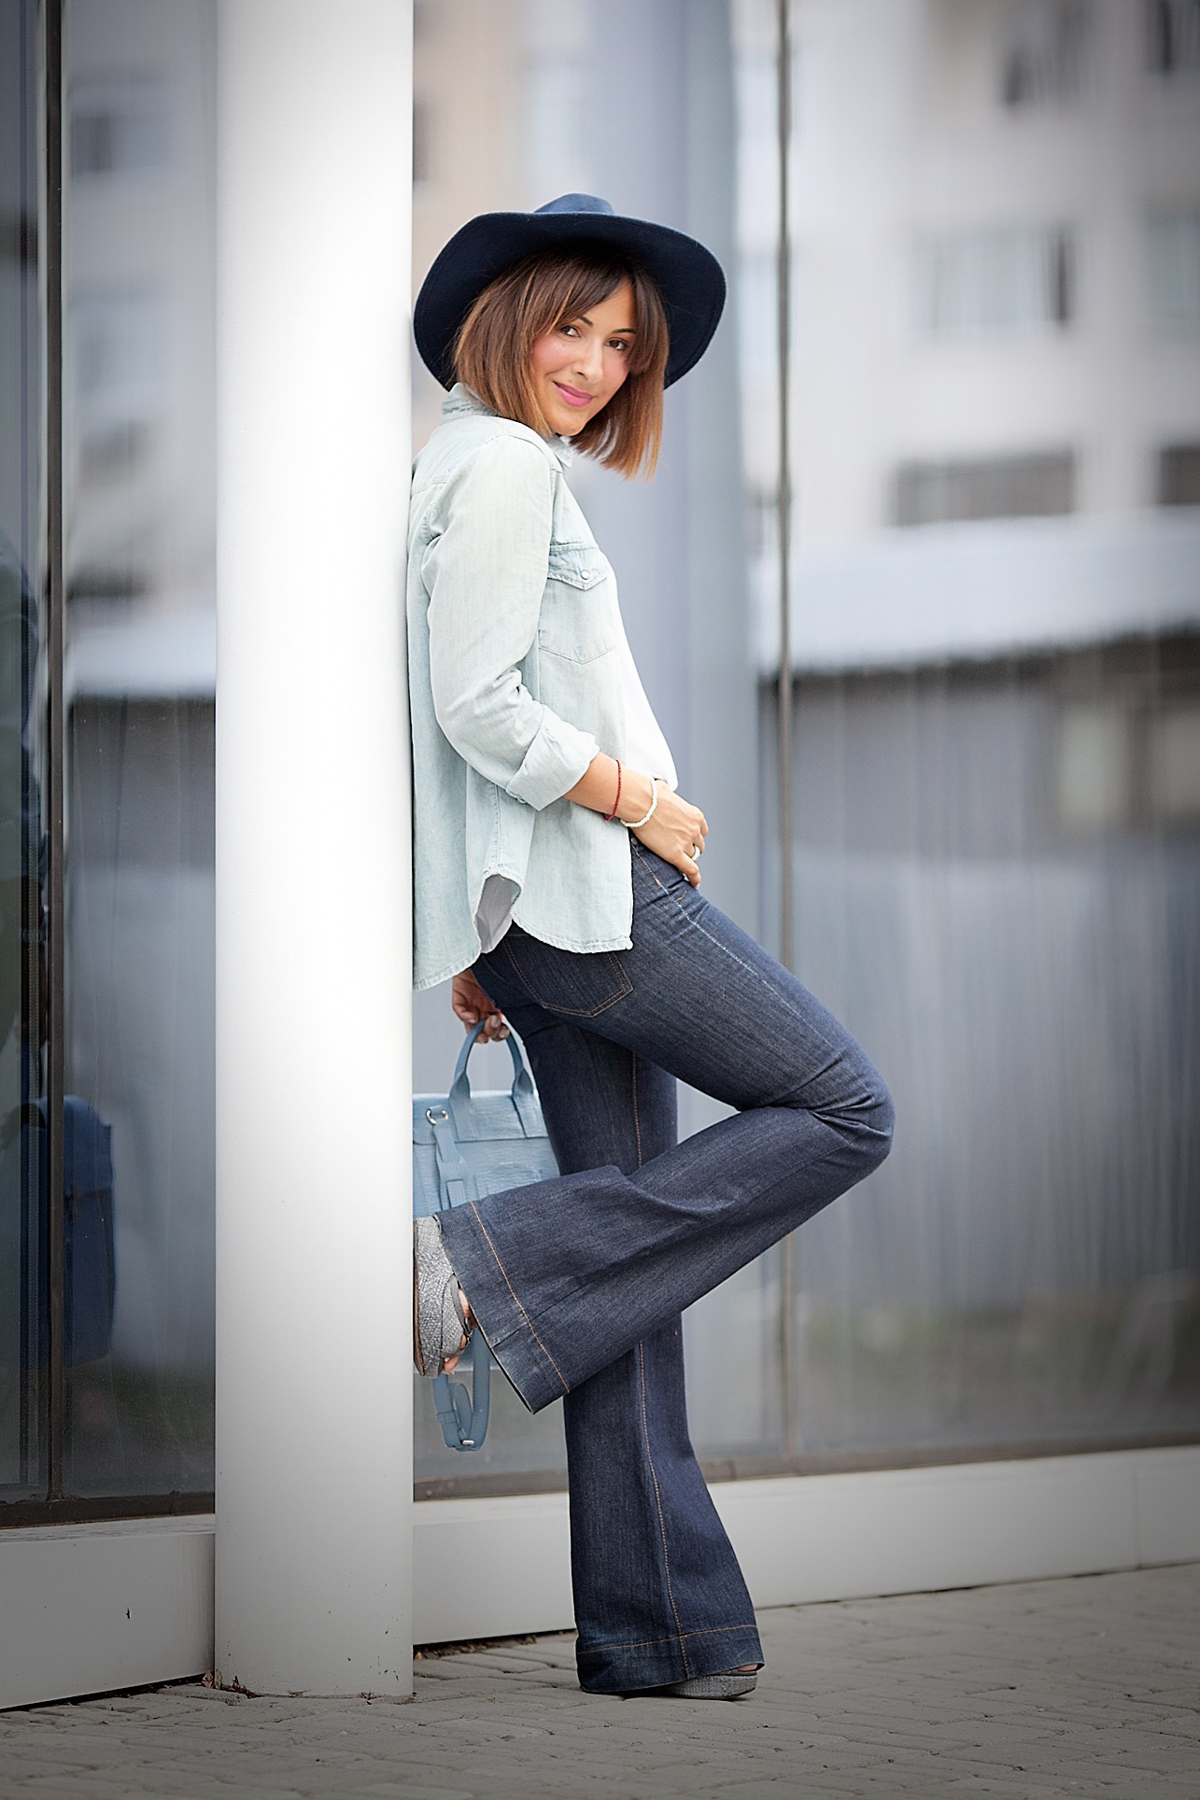 flare-jeans-outfit-in-70s-styling-fashion-blogger-galant-girl